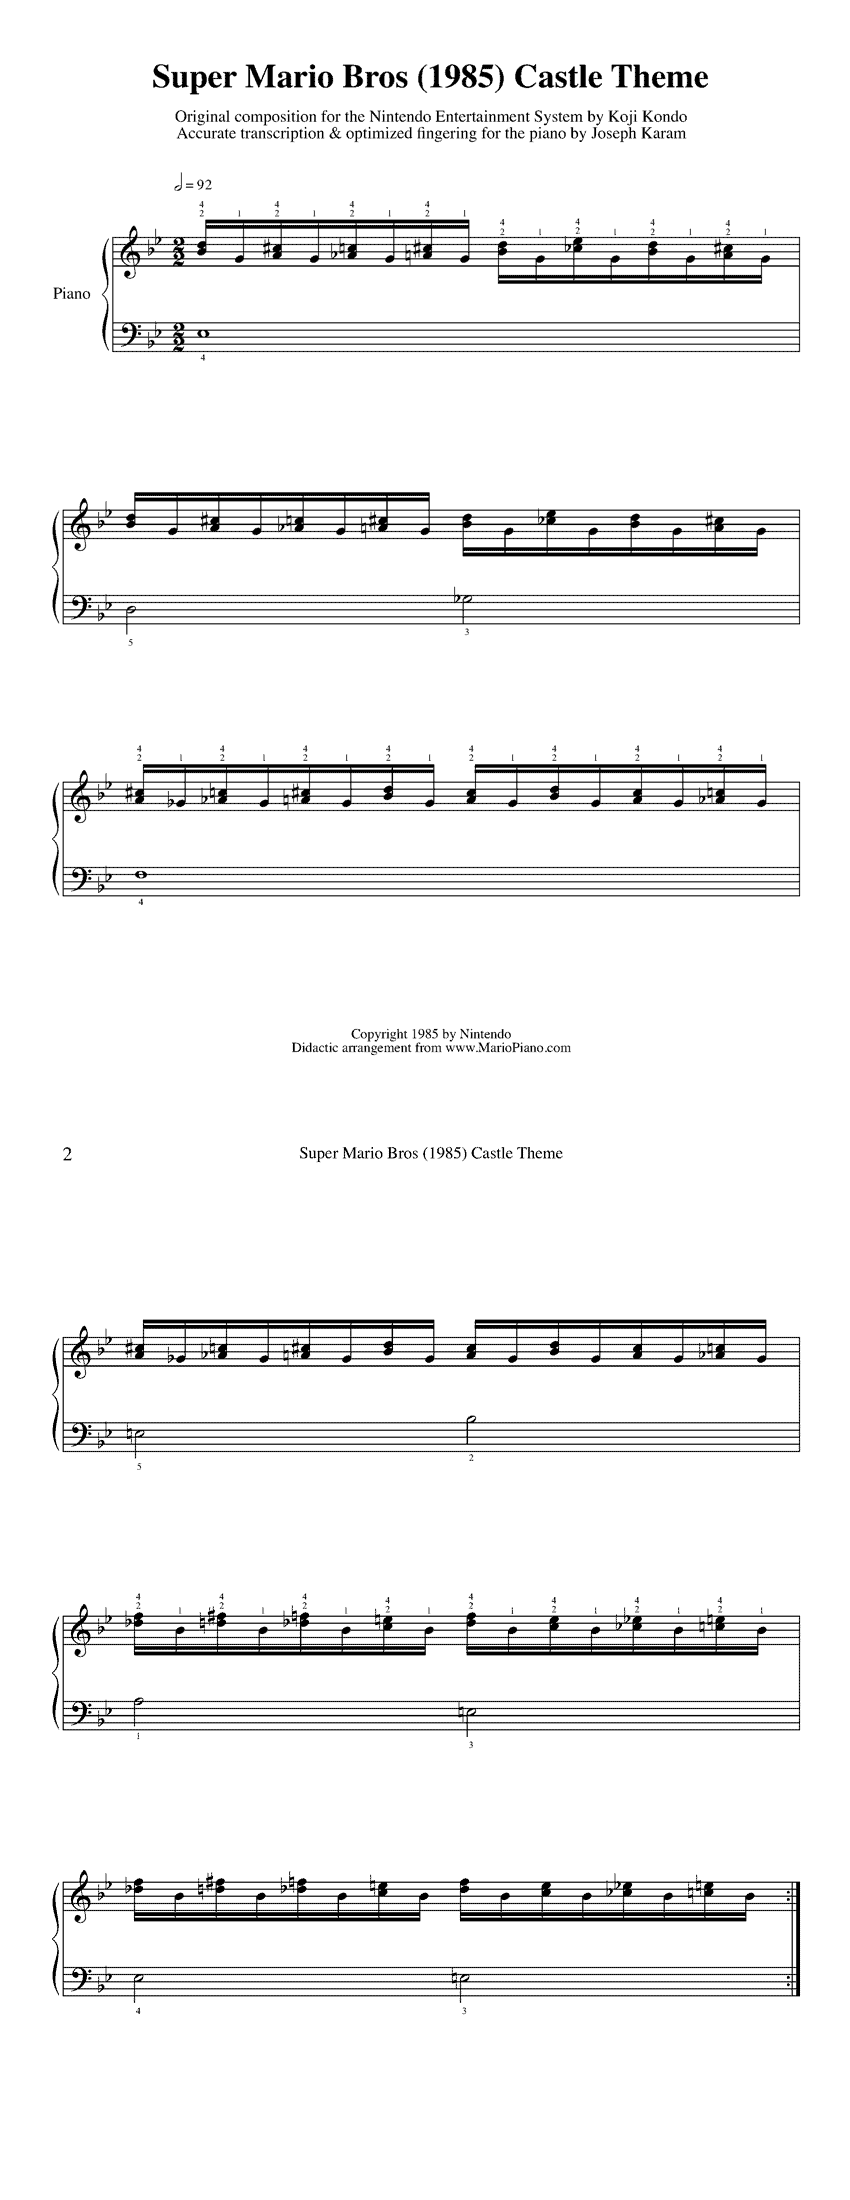 Free popular sheet music for amateur musicians and learners!